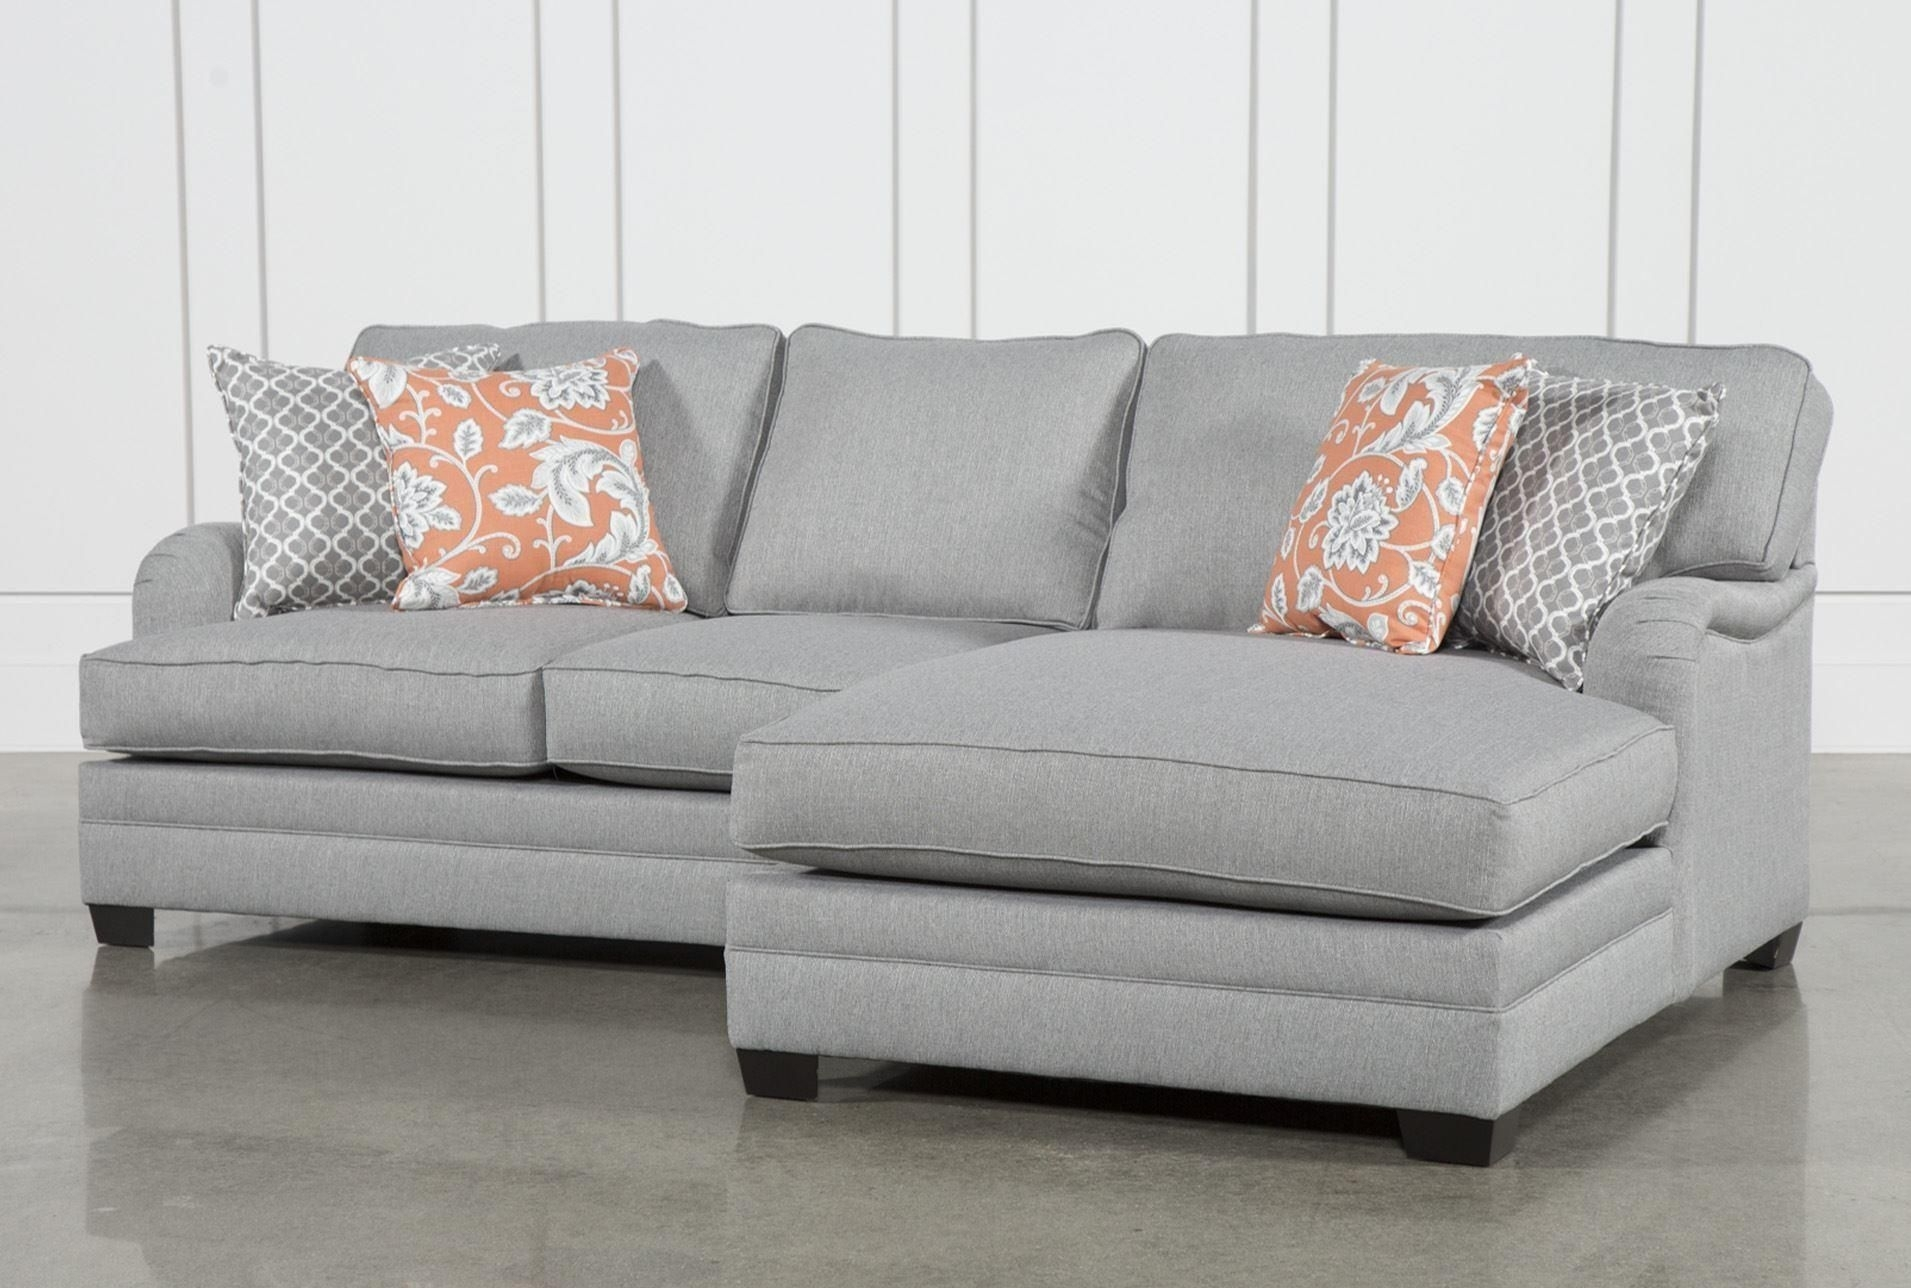 Marissa 2 Piece Sectional W/raf Chaise For Taren Reversible Sofa/chaise Sleeper Sectionals With Storage Ottoman (View 17 of 25)